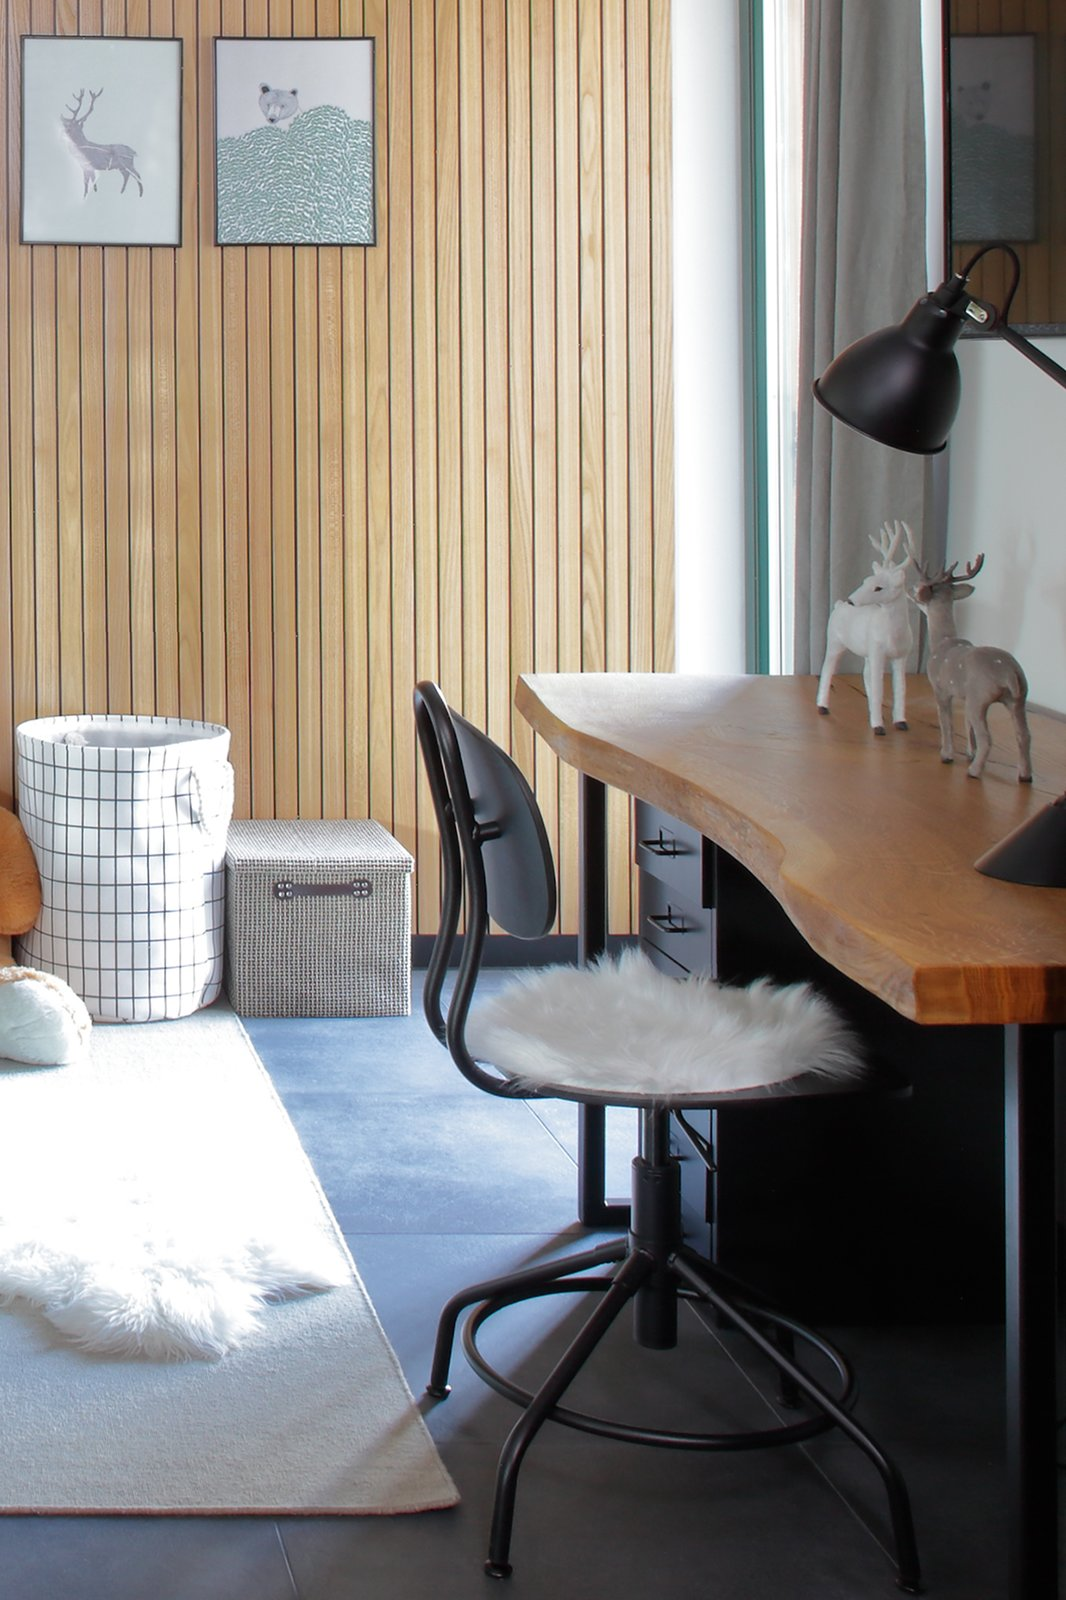 Kids Room, Bedroom Room Type, Desk, Lamps, Neutral Gender, Pre-Teen Age, and Ceramic Tile Floor  Mountain Apartment in Ore Mountain, Czech Republic by Martina Schultes www.martinaschultes.com